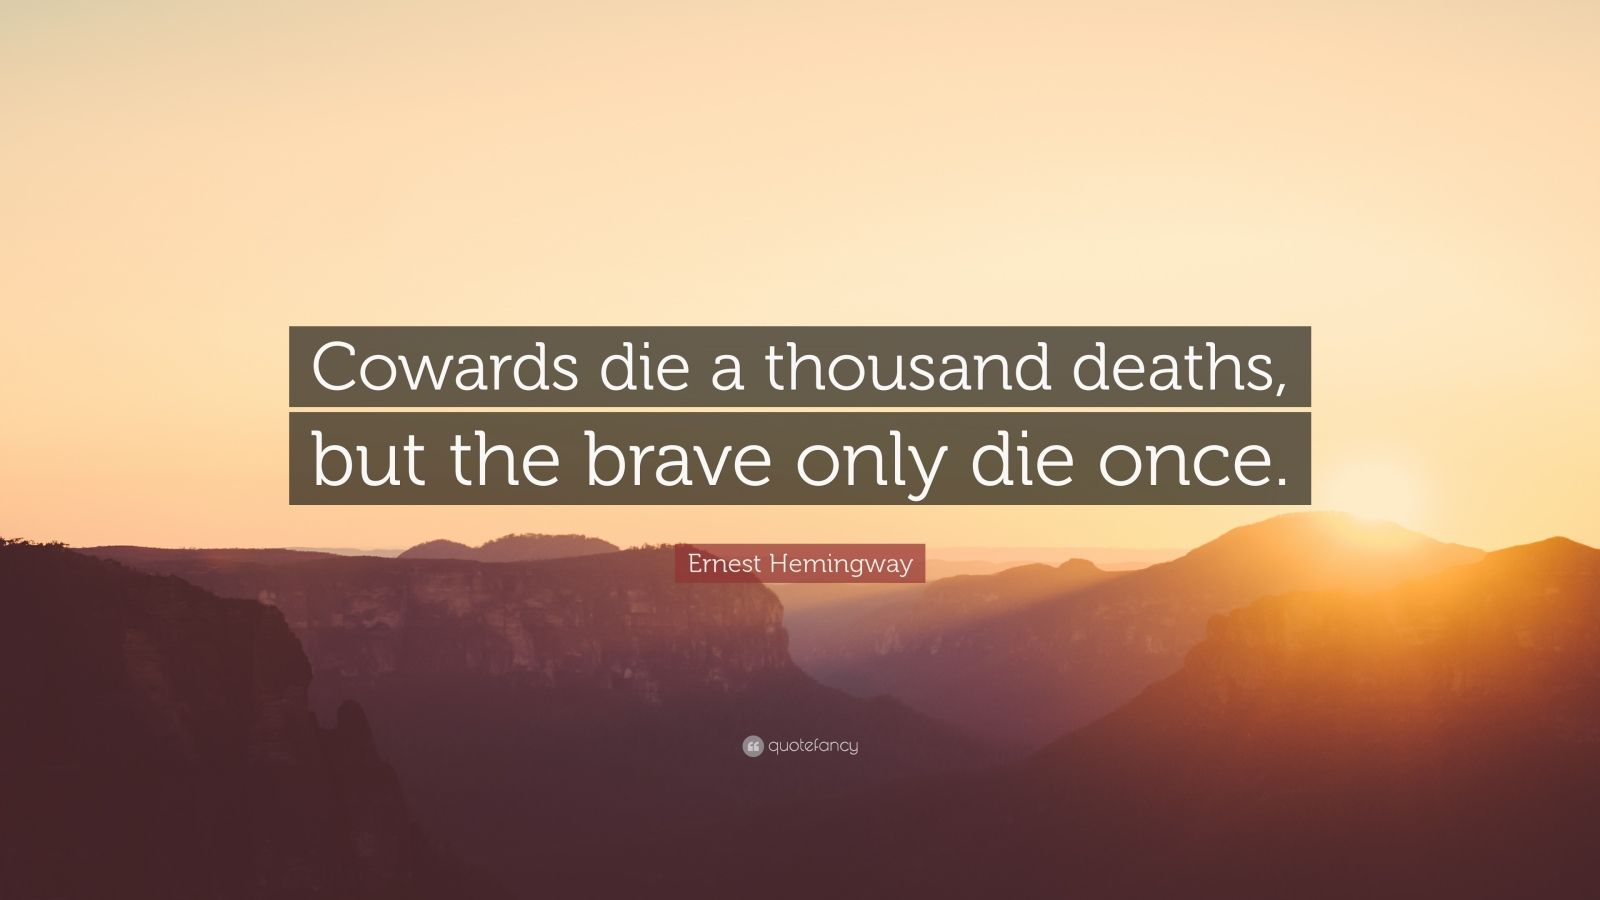 Robert E. Lee - I Would Rather Die a Thousand Deaths